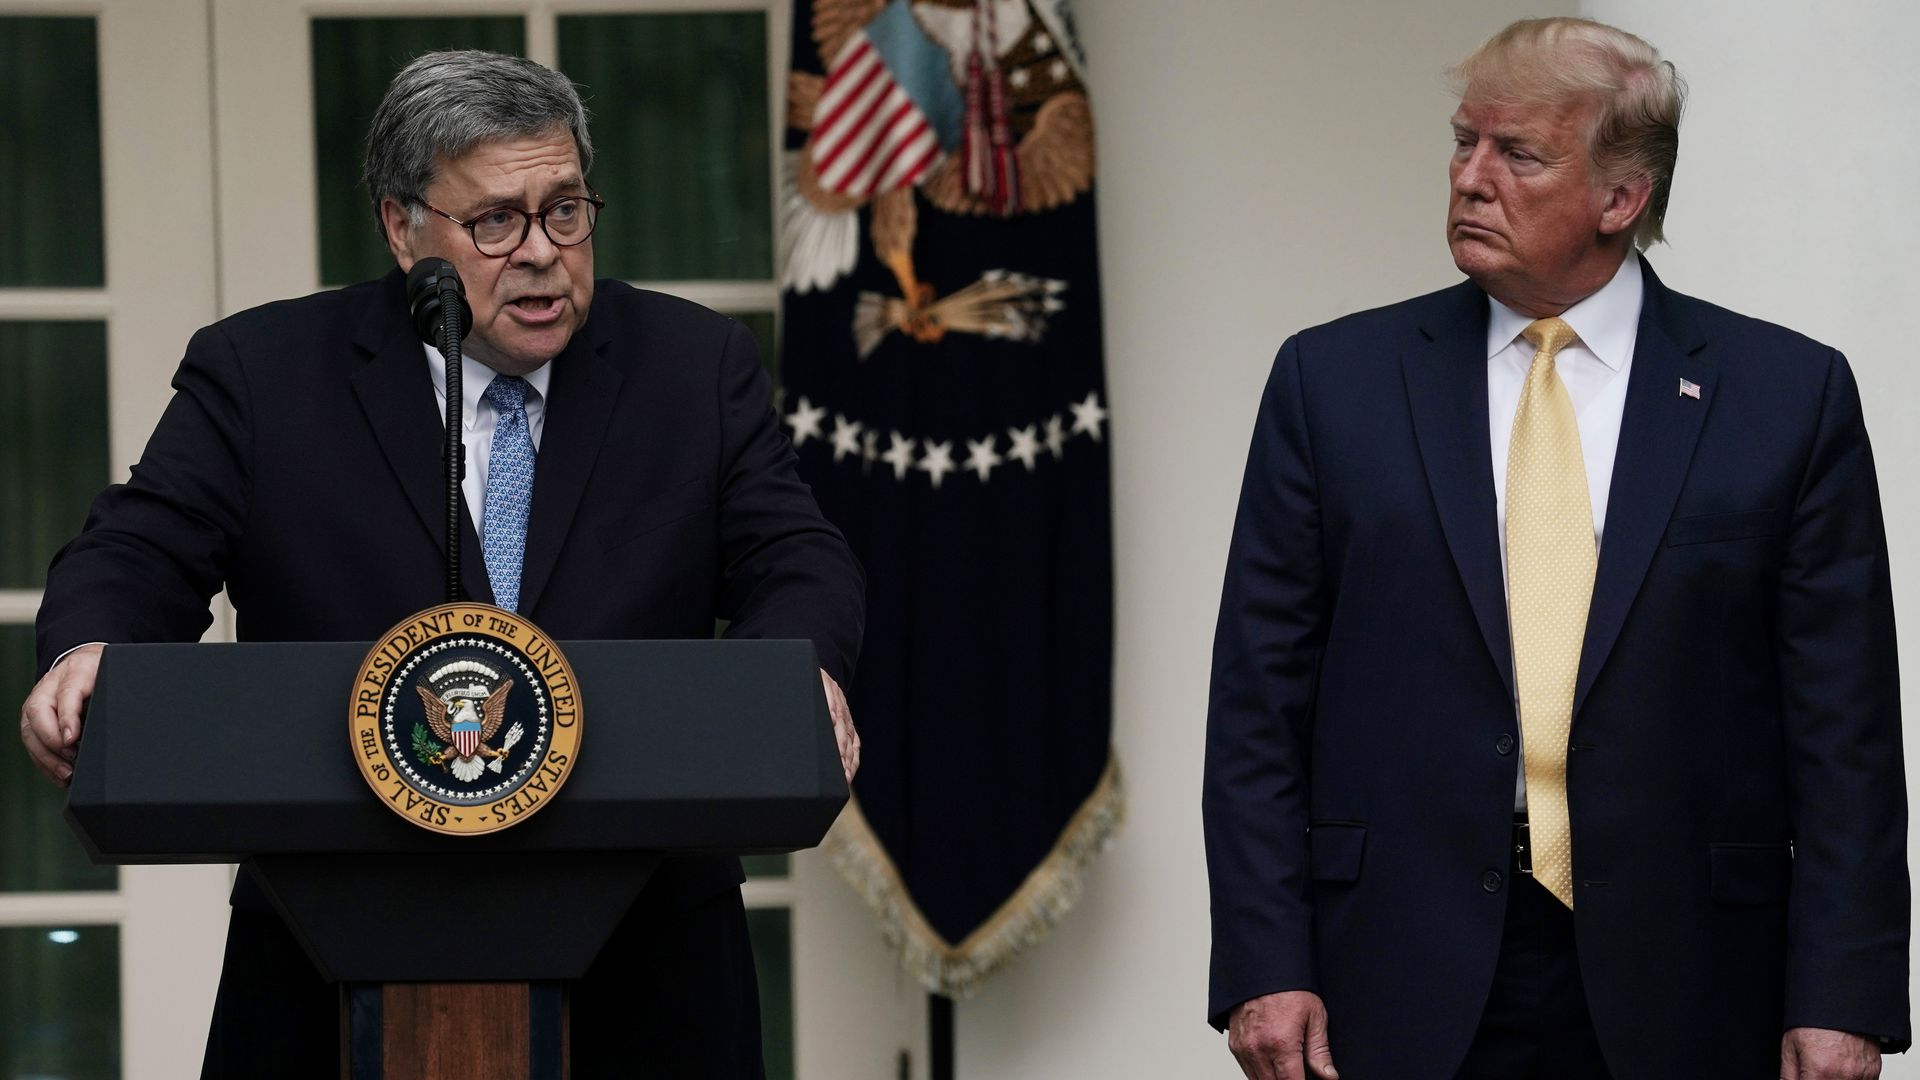 Attorney General William Barr speaks as President Donald Trump looks on during a Rose Garden statement on the census July 11